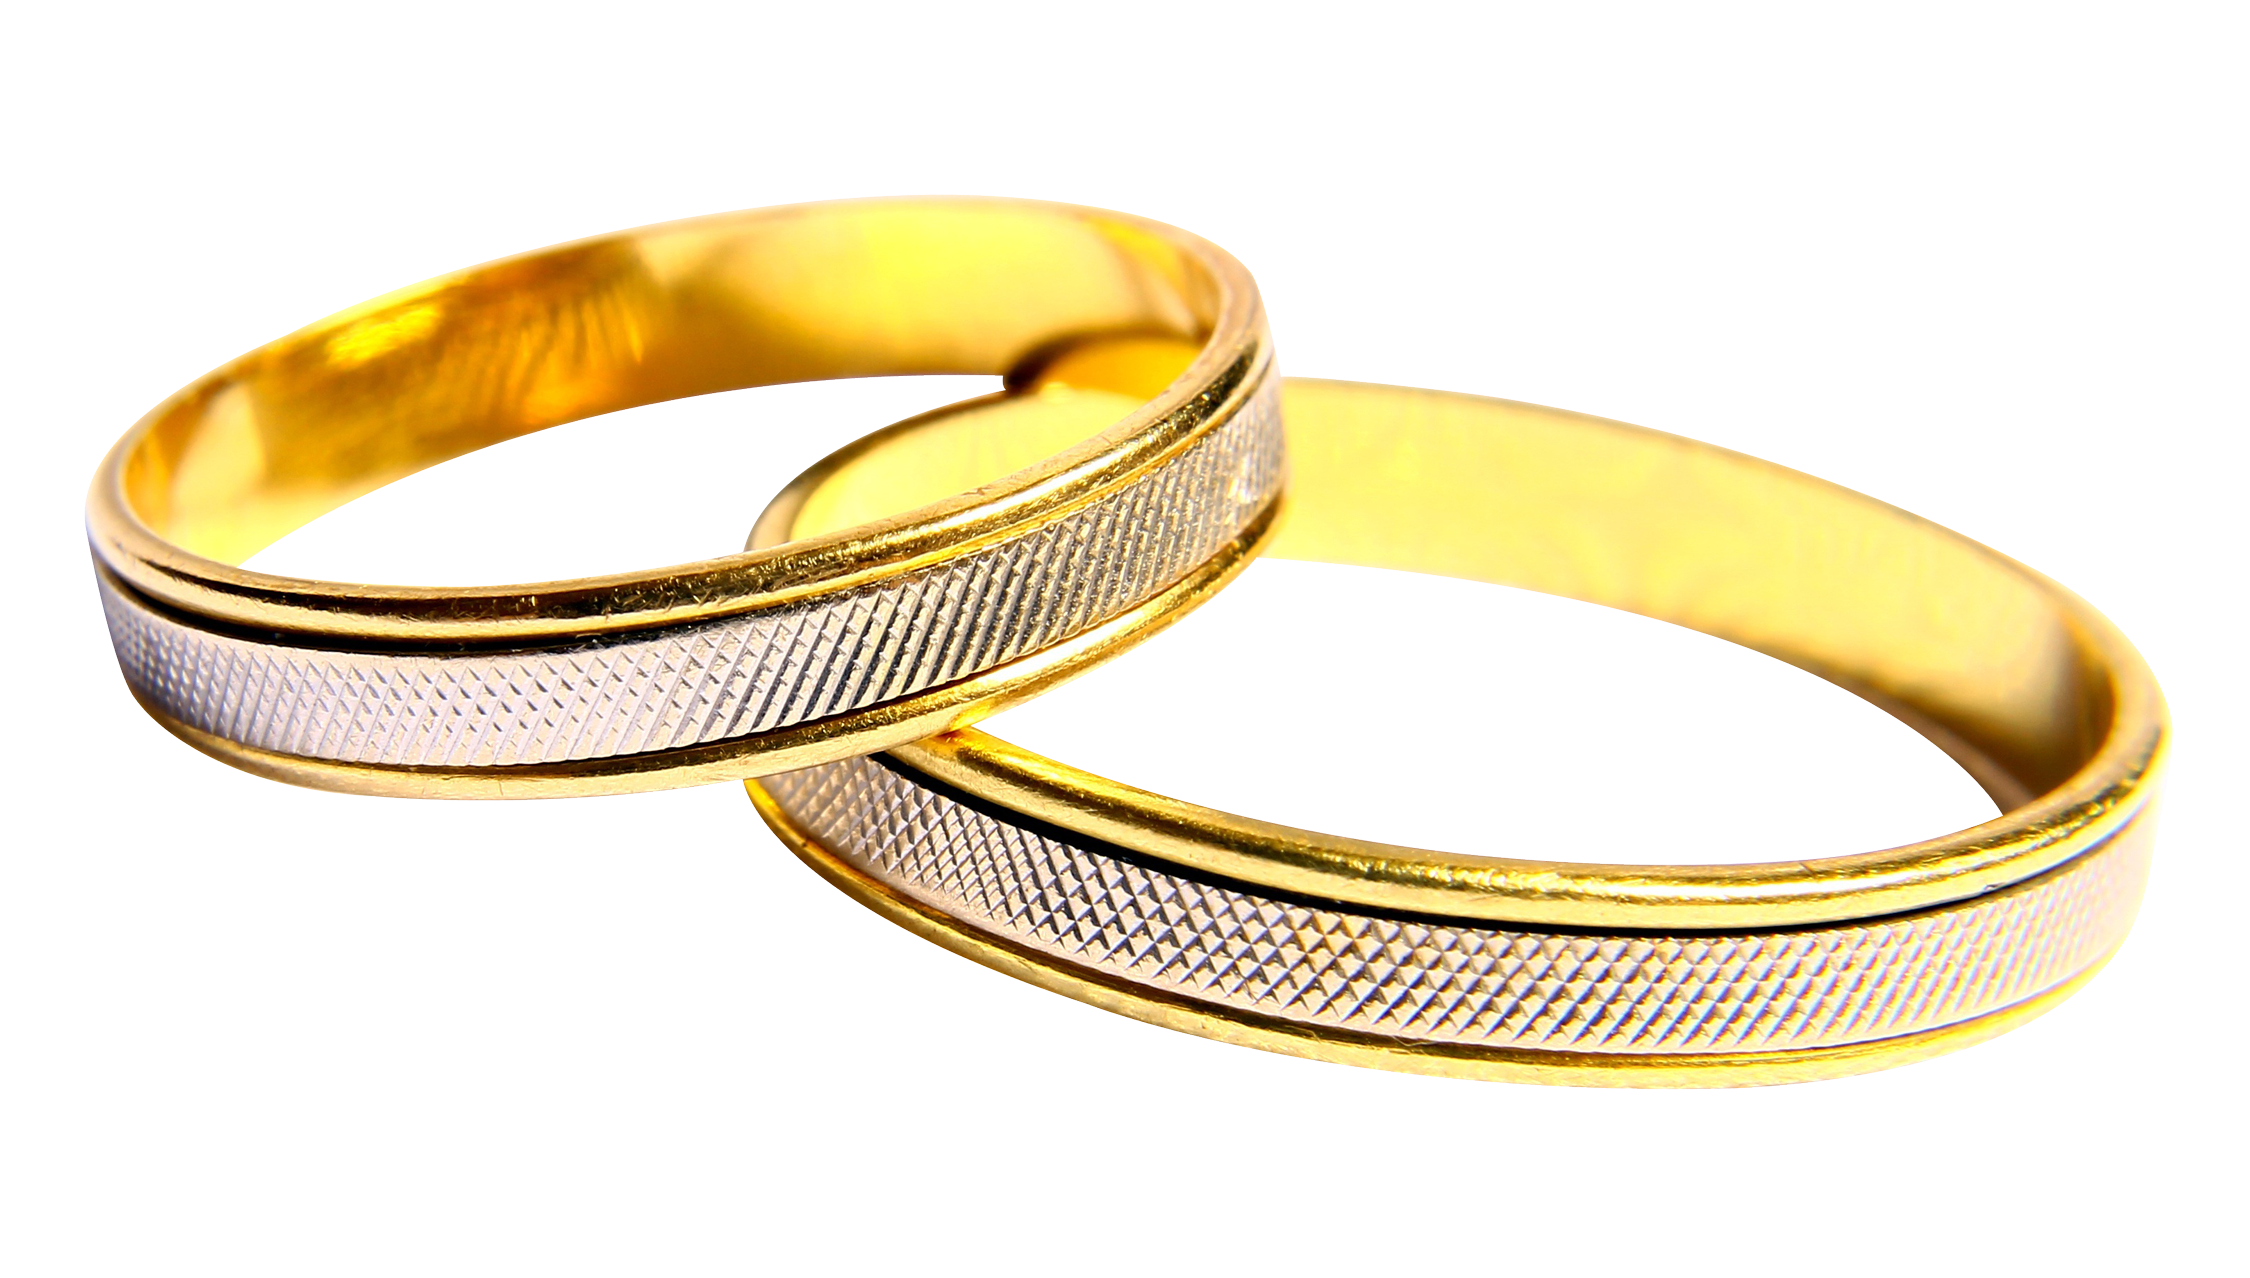 Wedding Ring Png.Wedding Rings Png Image Purepng Free Transparent Cc0 Png Image